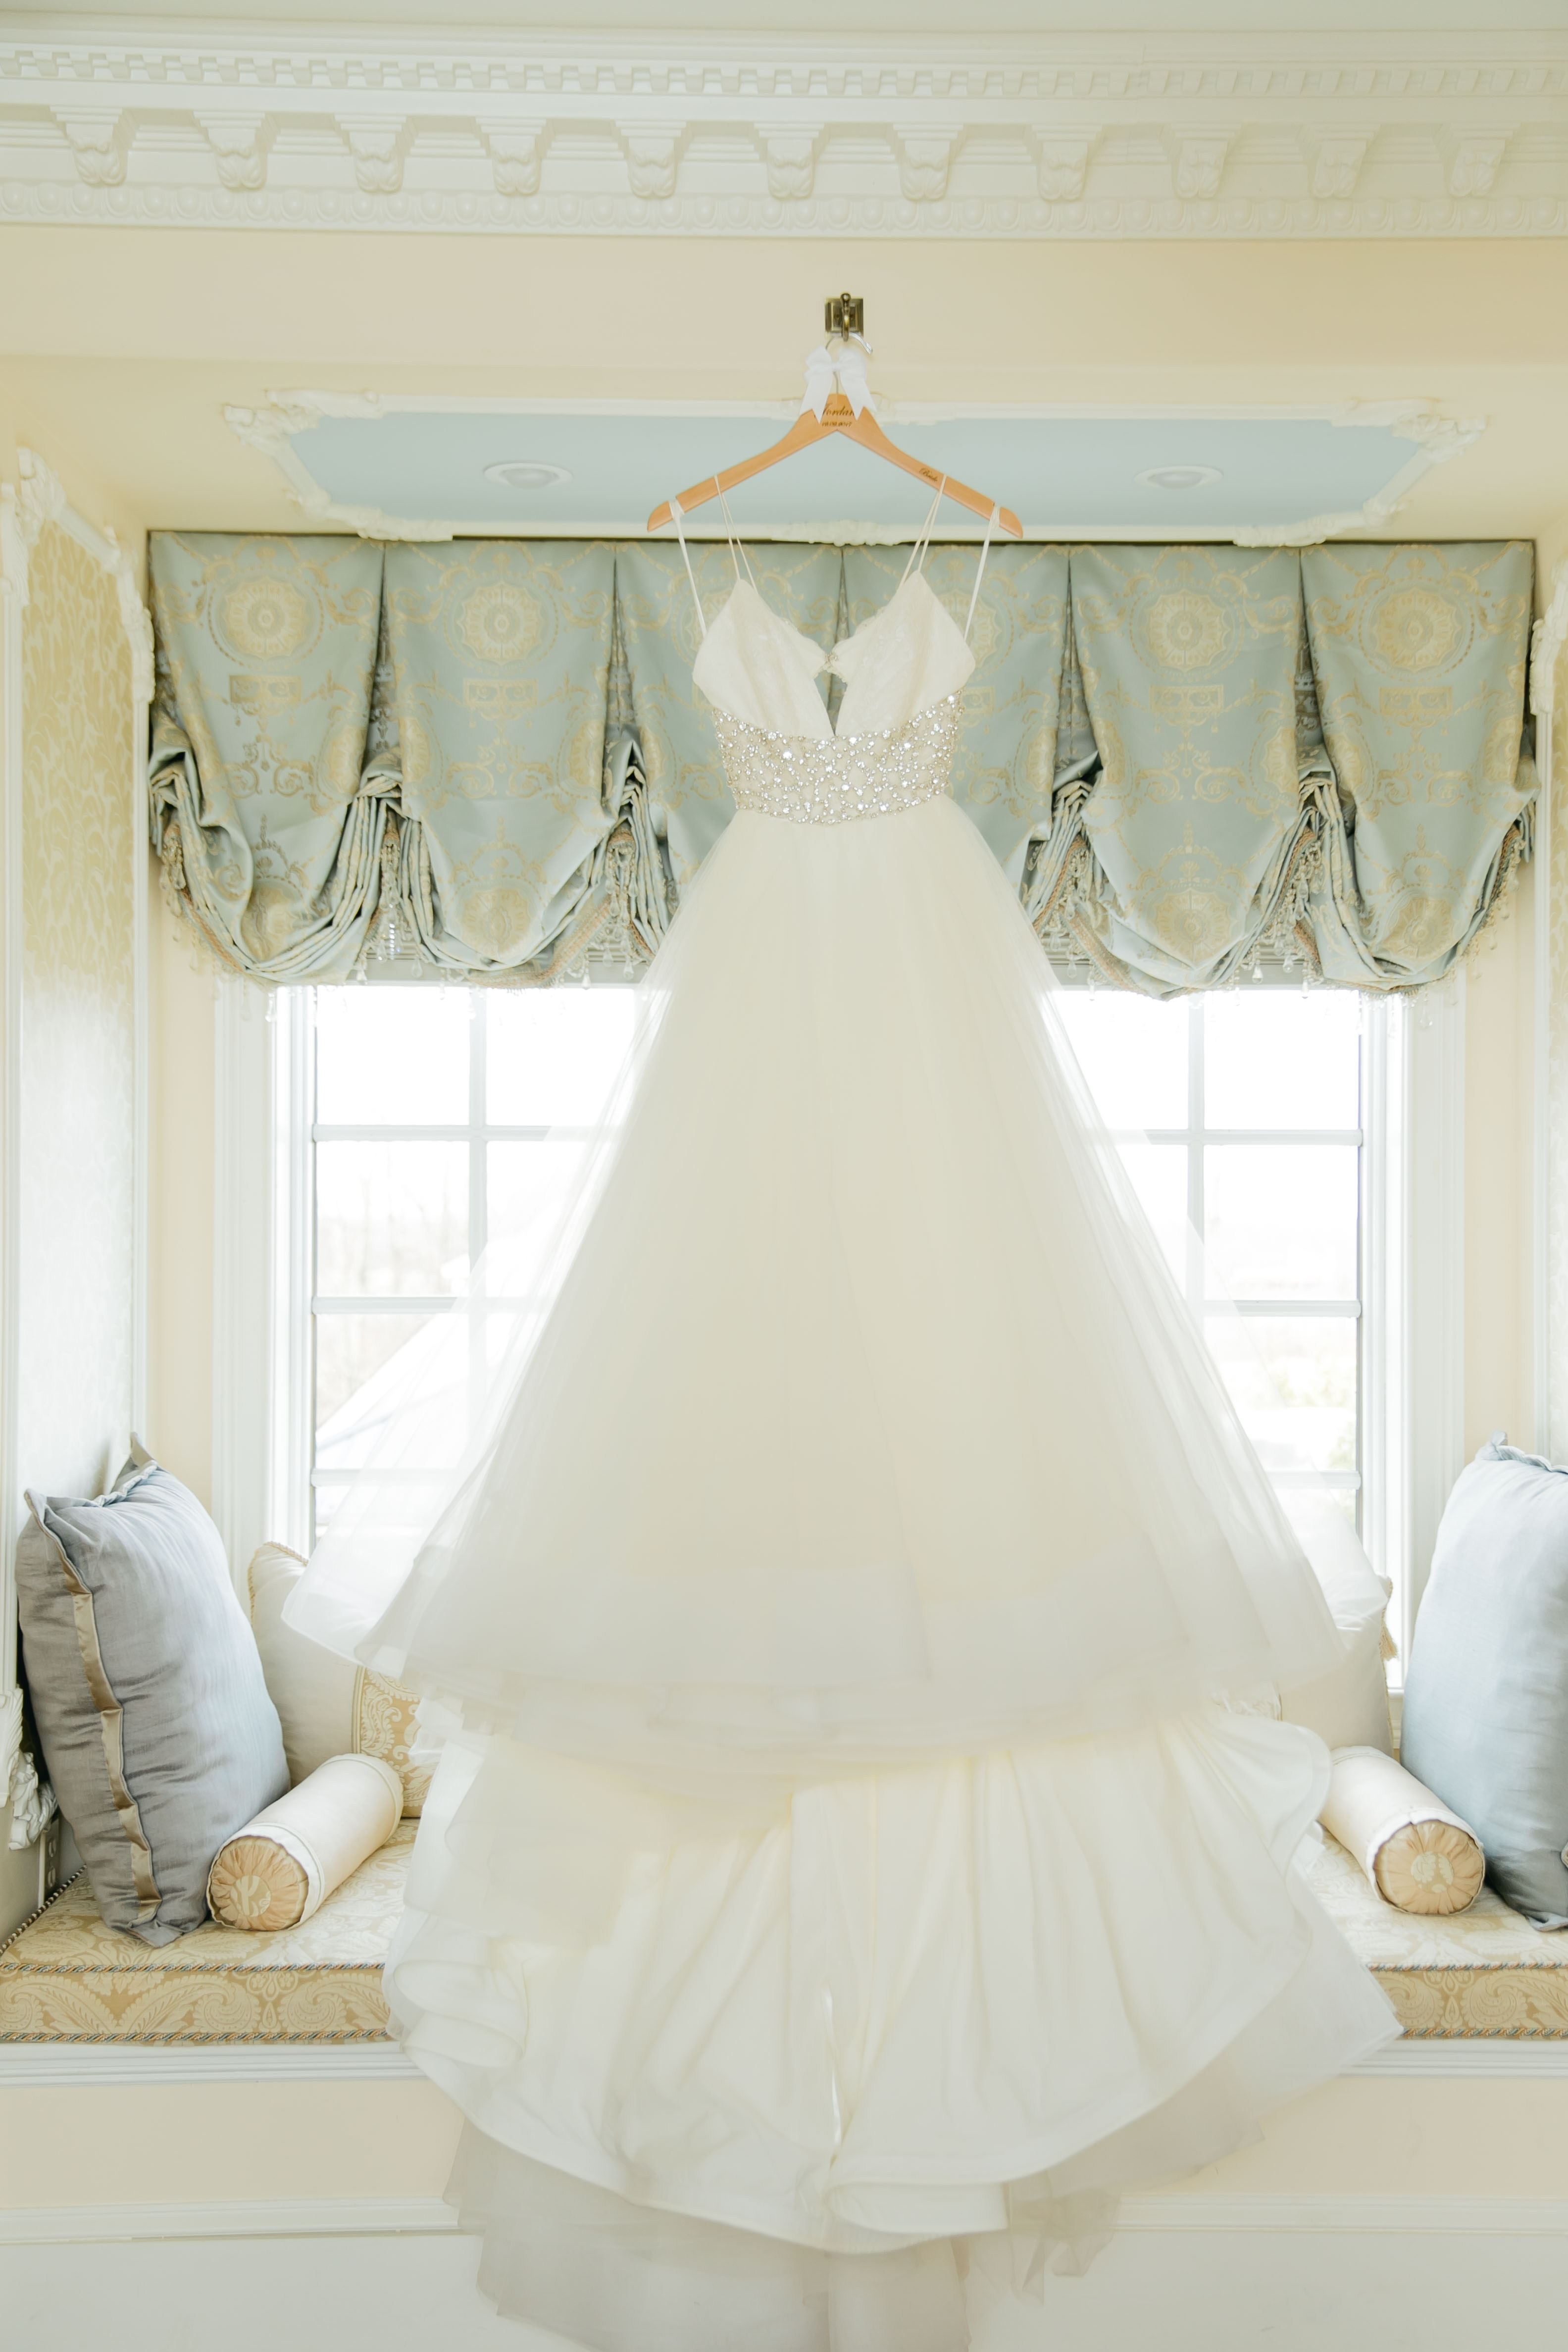 A gorgeous flowy ballgown was the perfect choice for our rustic chic winter wedding bride!